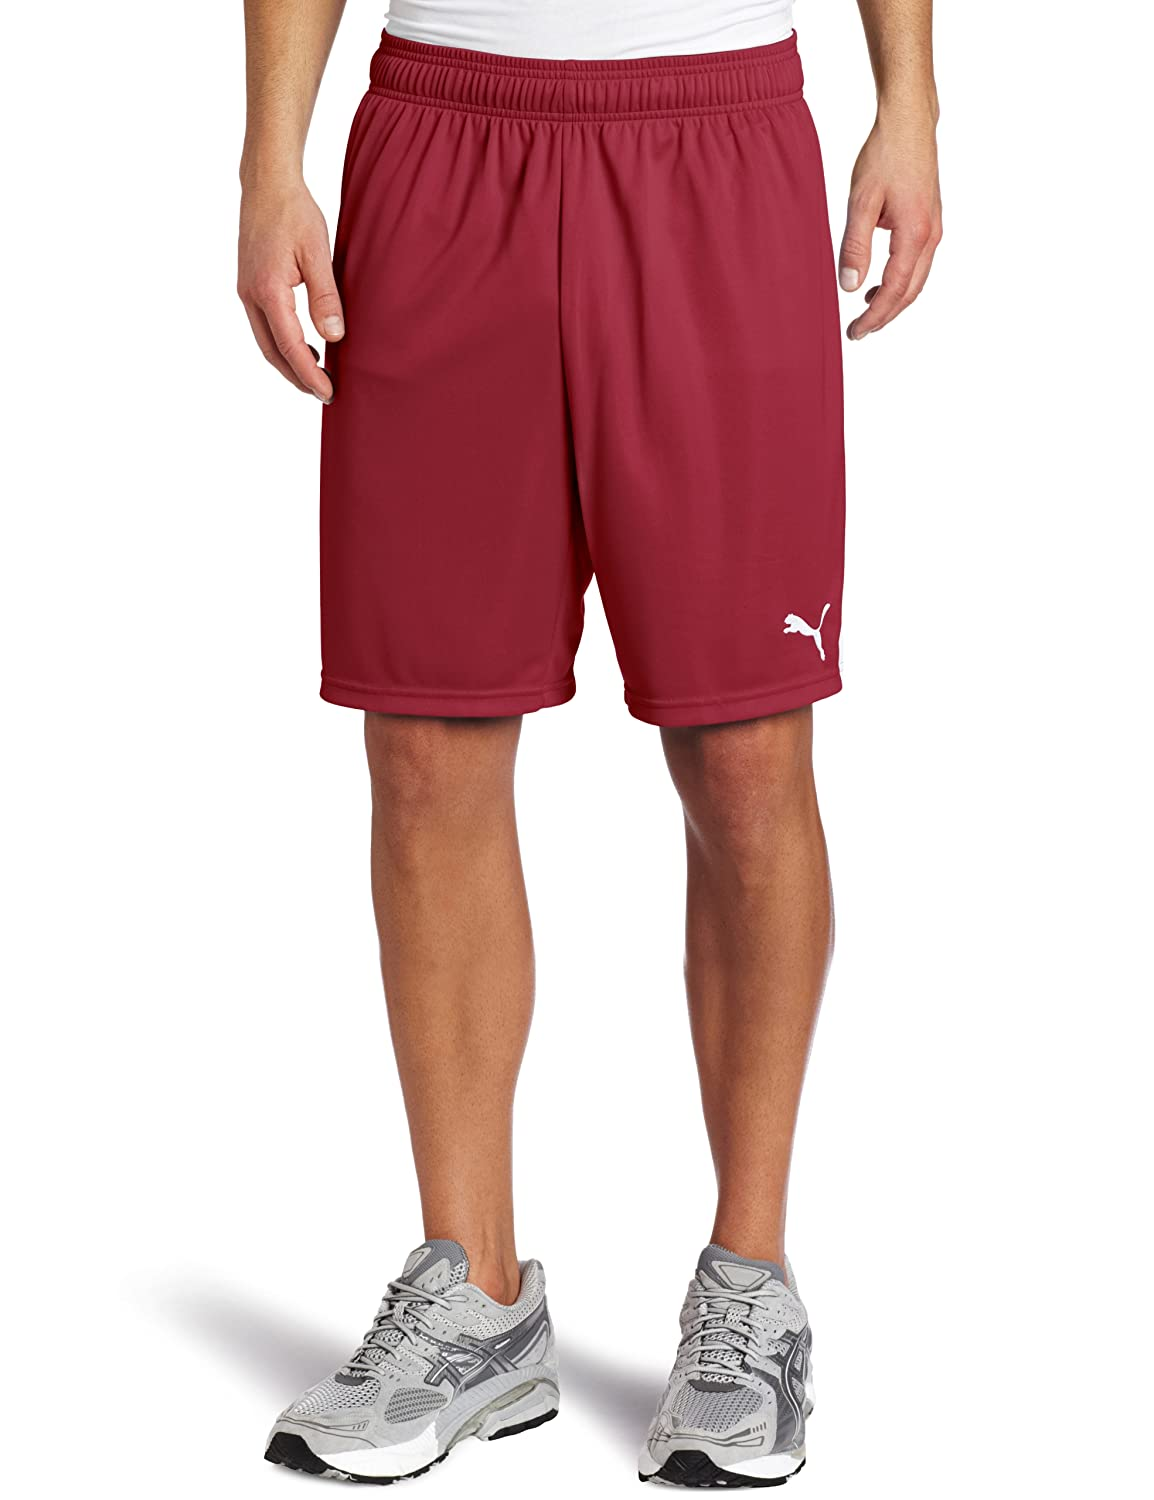 Puma Men's Team Shorts without Inner Slip, Youth Small, Team Burgundy-Weiß